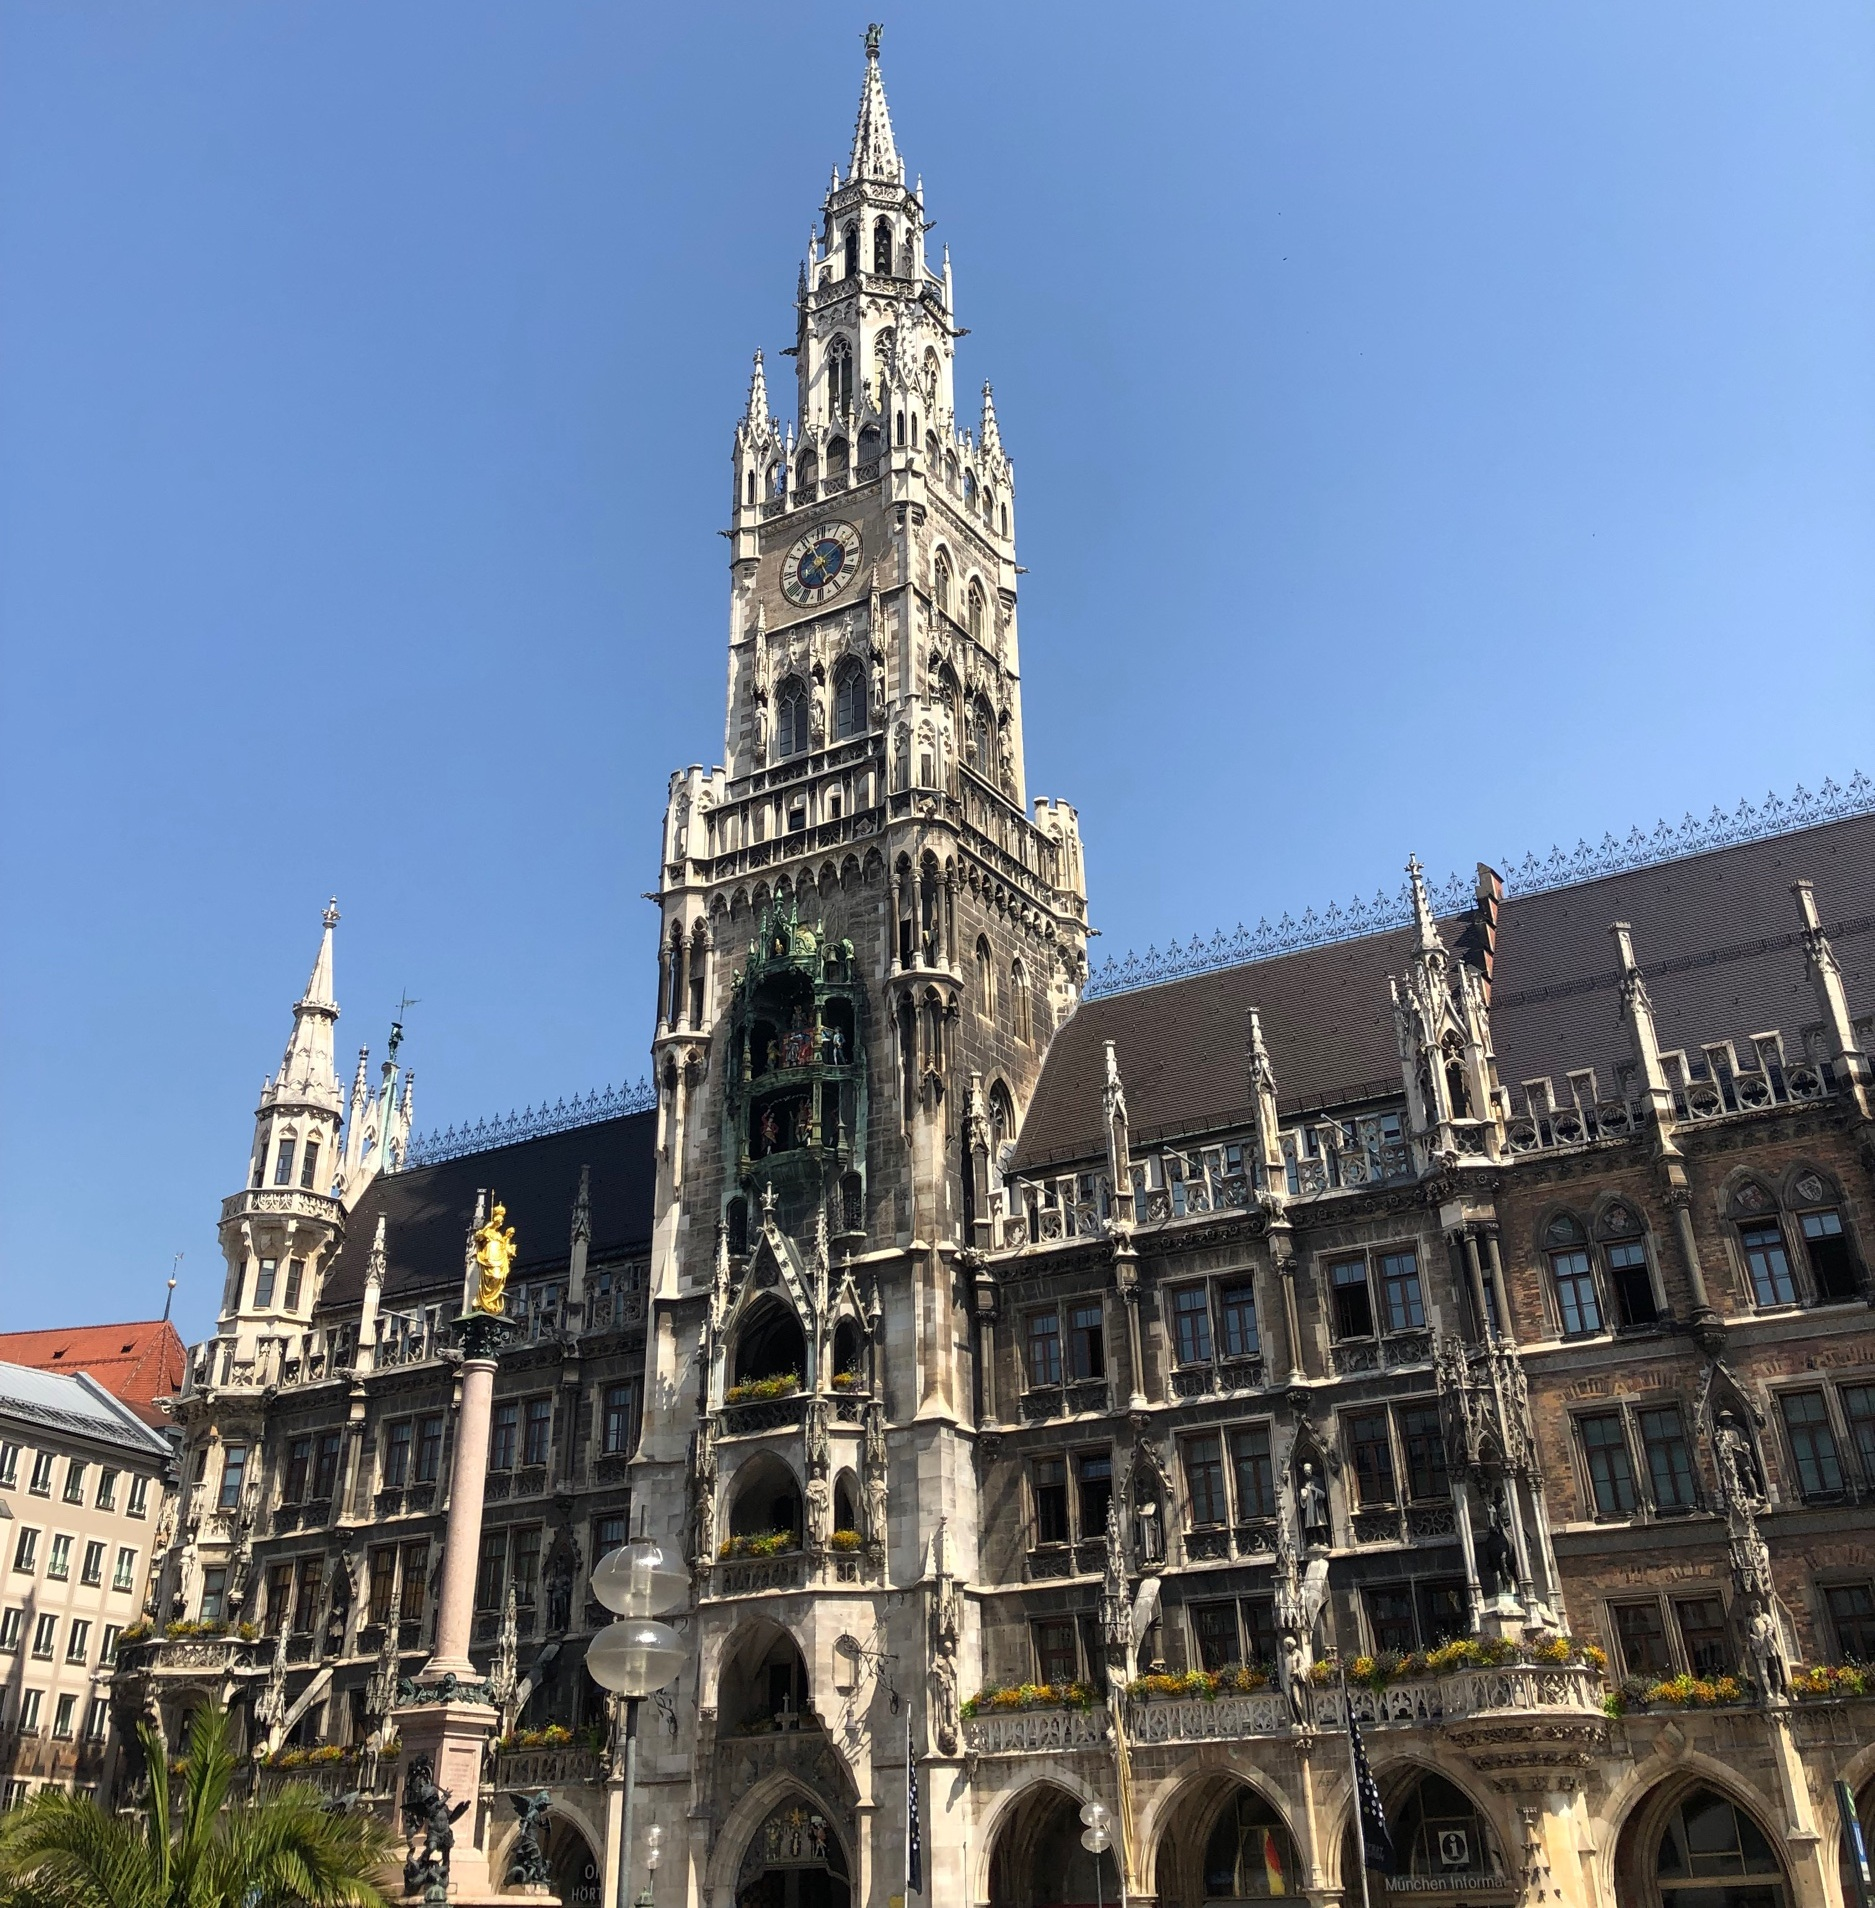 There are five entrances to Ratskeller around the Marienplatz.